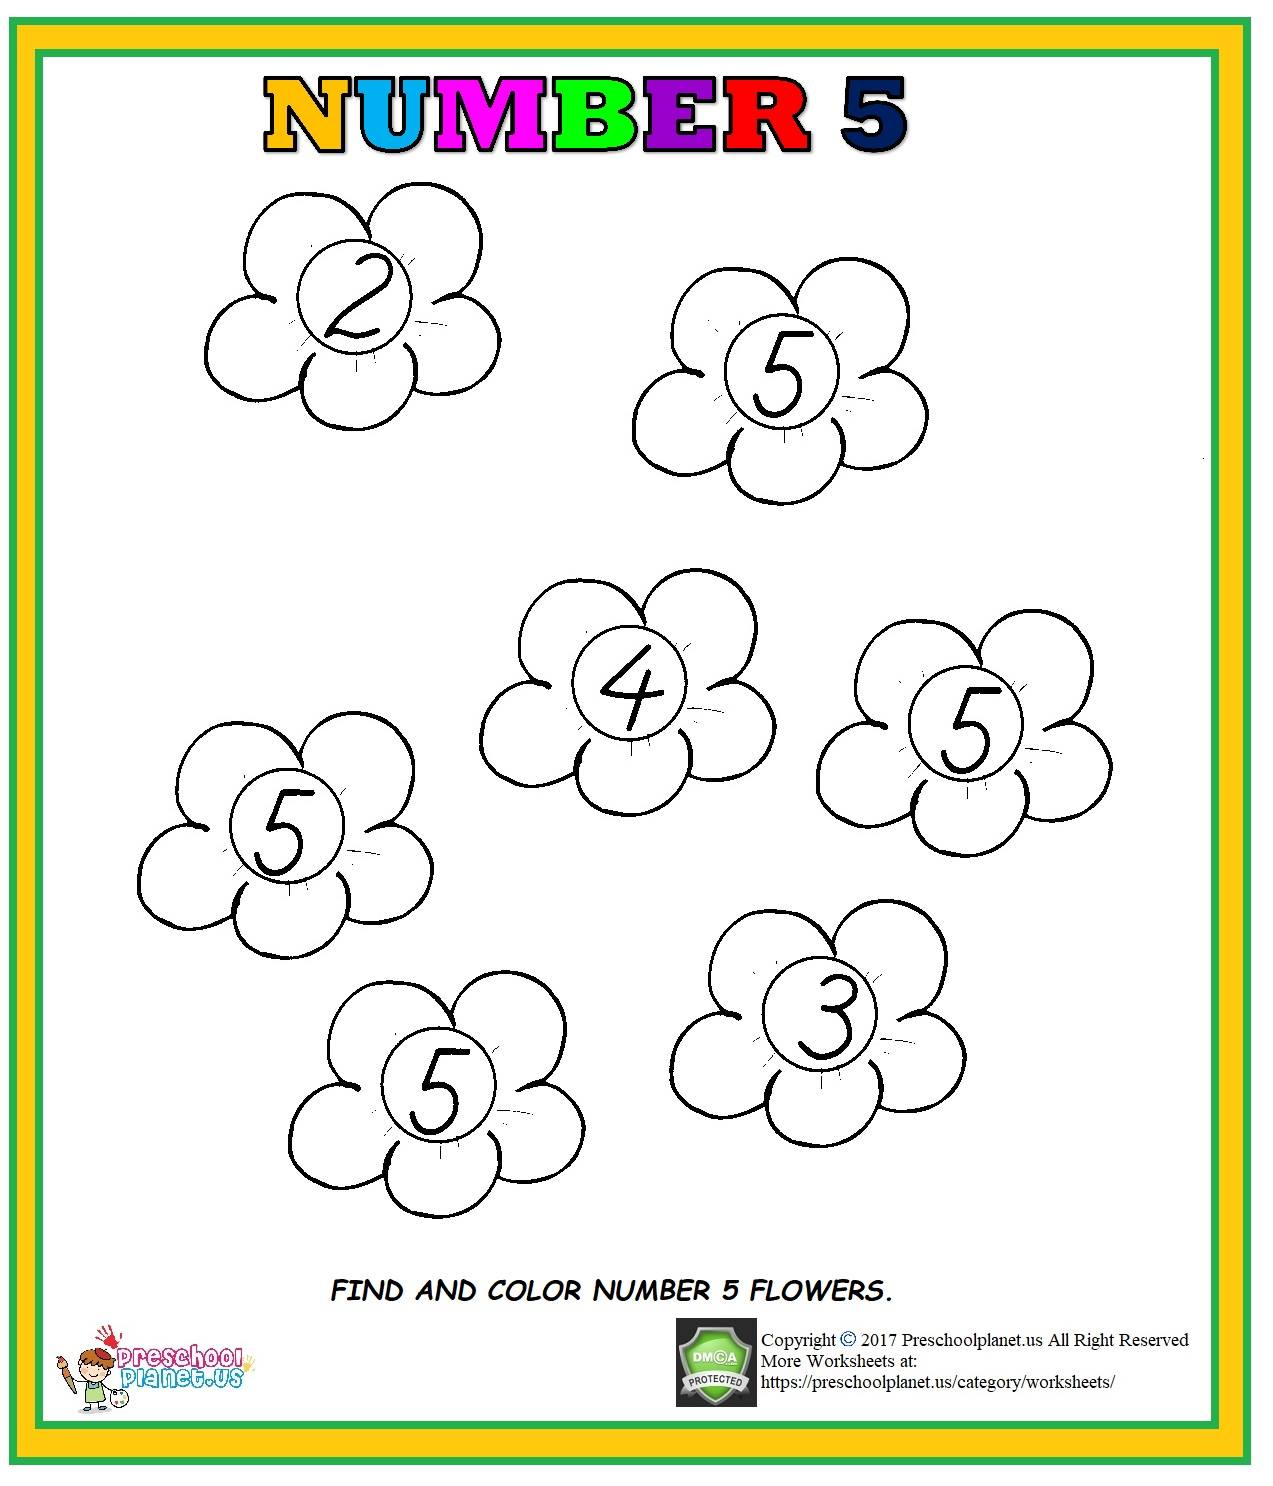 Number 5 Worksheet For Preschool Preschoolplanet